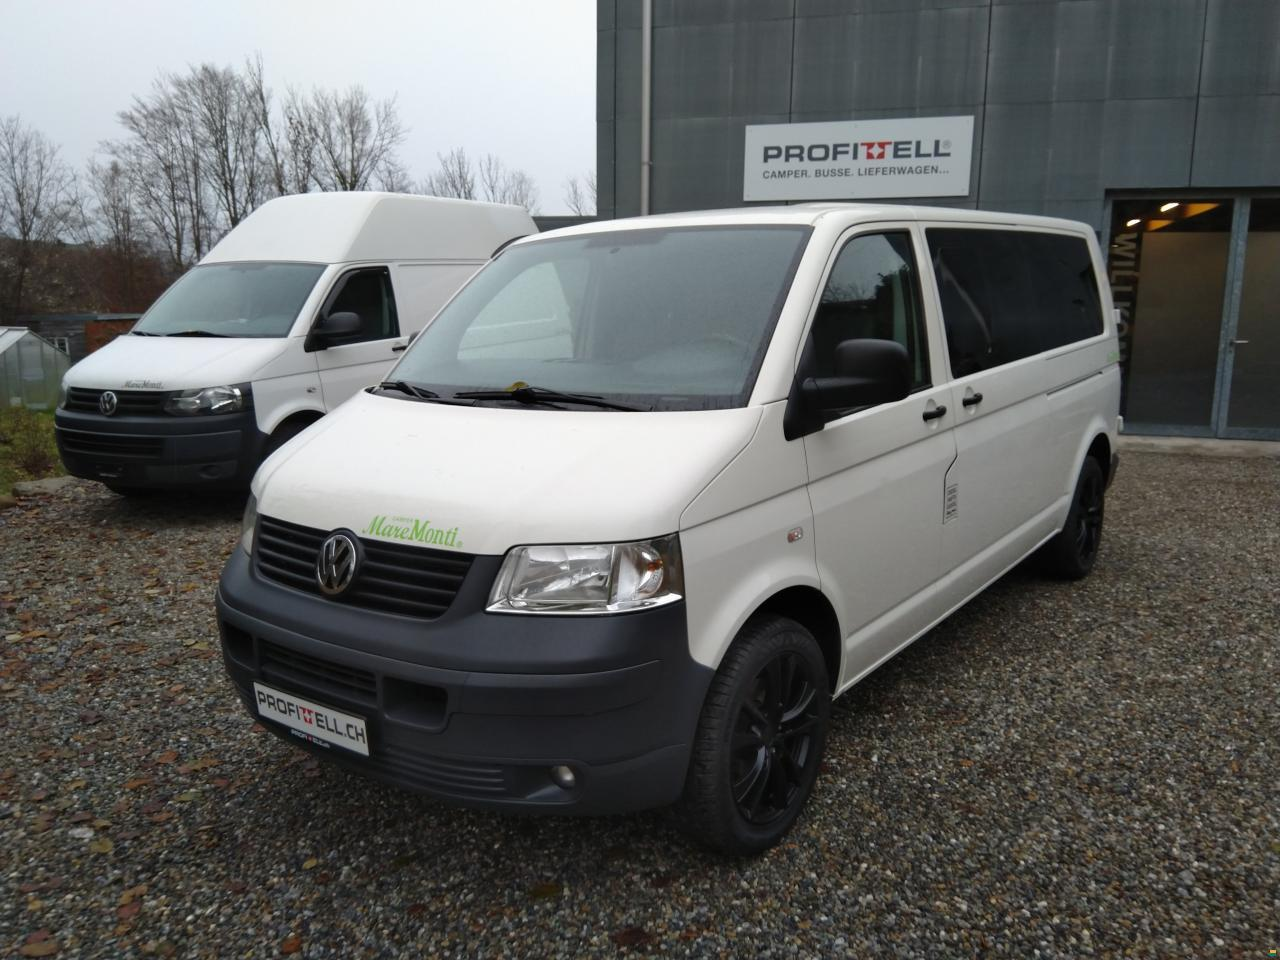 volkswagen vw t5 2 5 tdi maremonti sportcamper 3sit. Black Bedroom Furniture Sets. Home Design Ideas